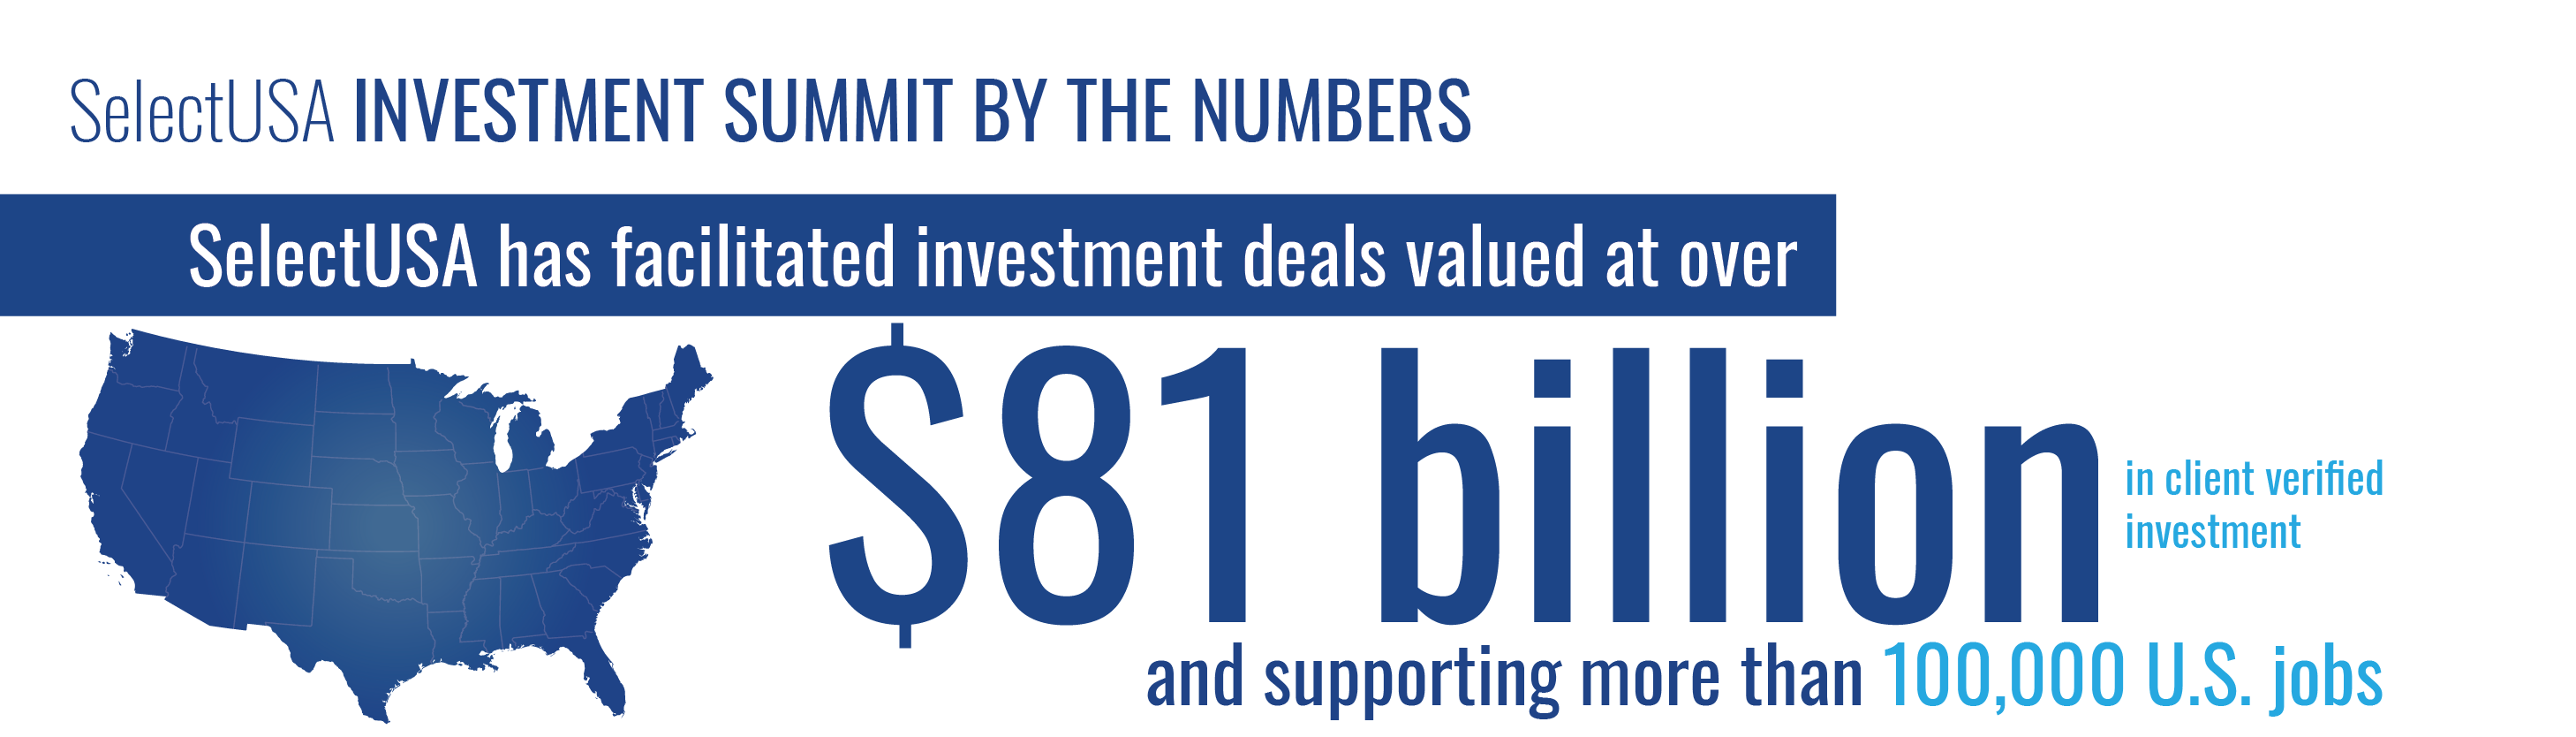 2019 SelectUSA Investment Summit Highlights Graphic